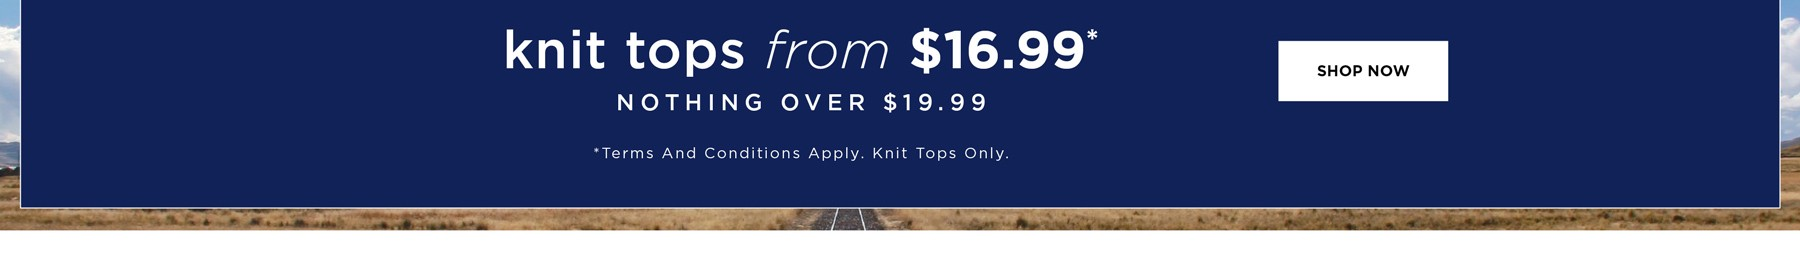 Knit Tops from $16.99 - Nothing over $19.99* - See Terms & Conditions for full details - Prices as marked - SHOP NOW